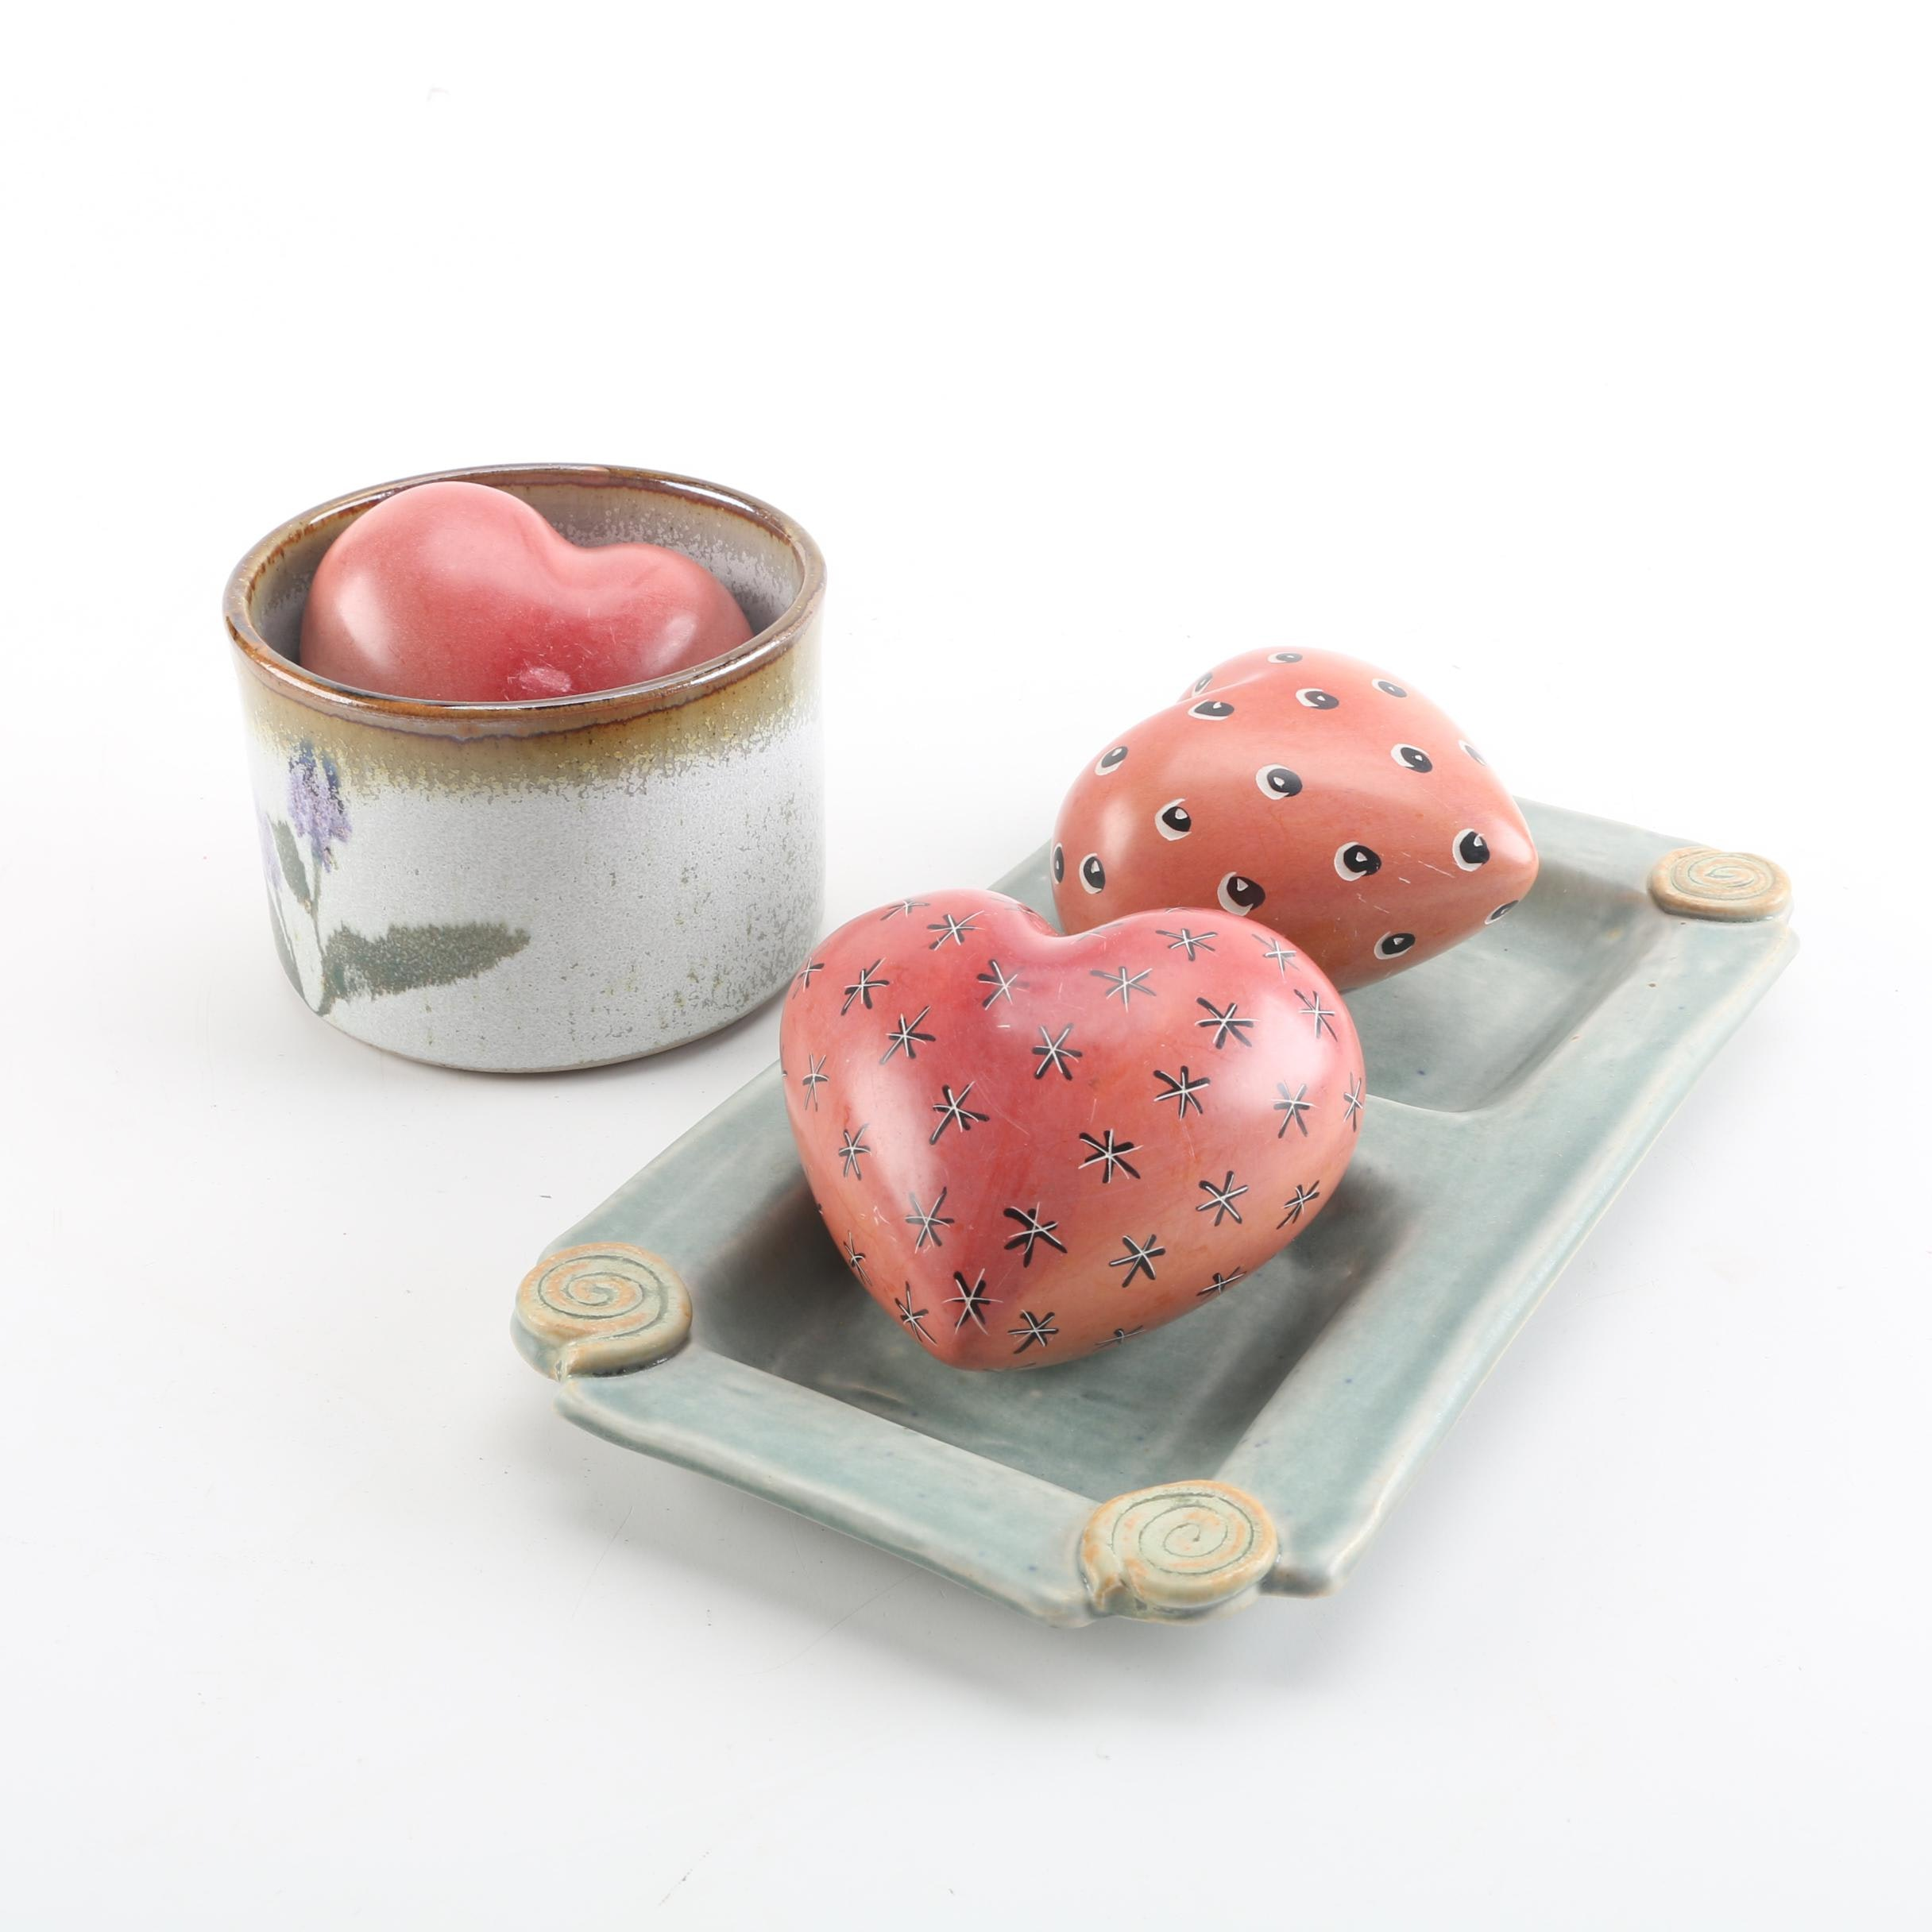 Signed Stoneware Bowls with Ceramic Heart Figurines